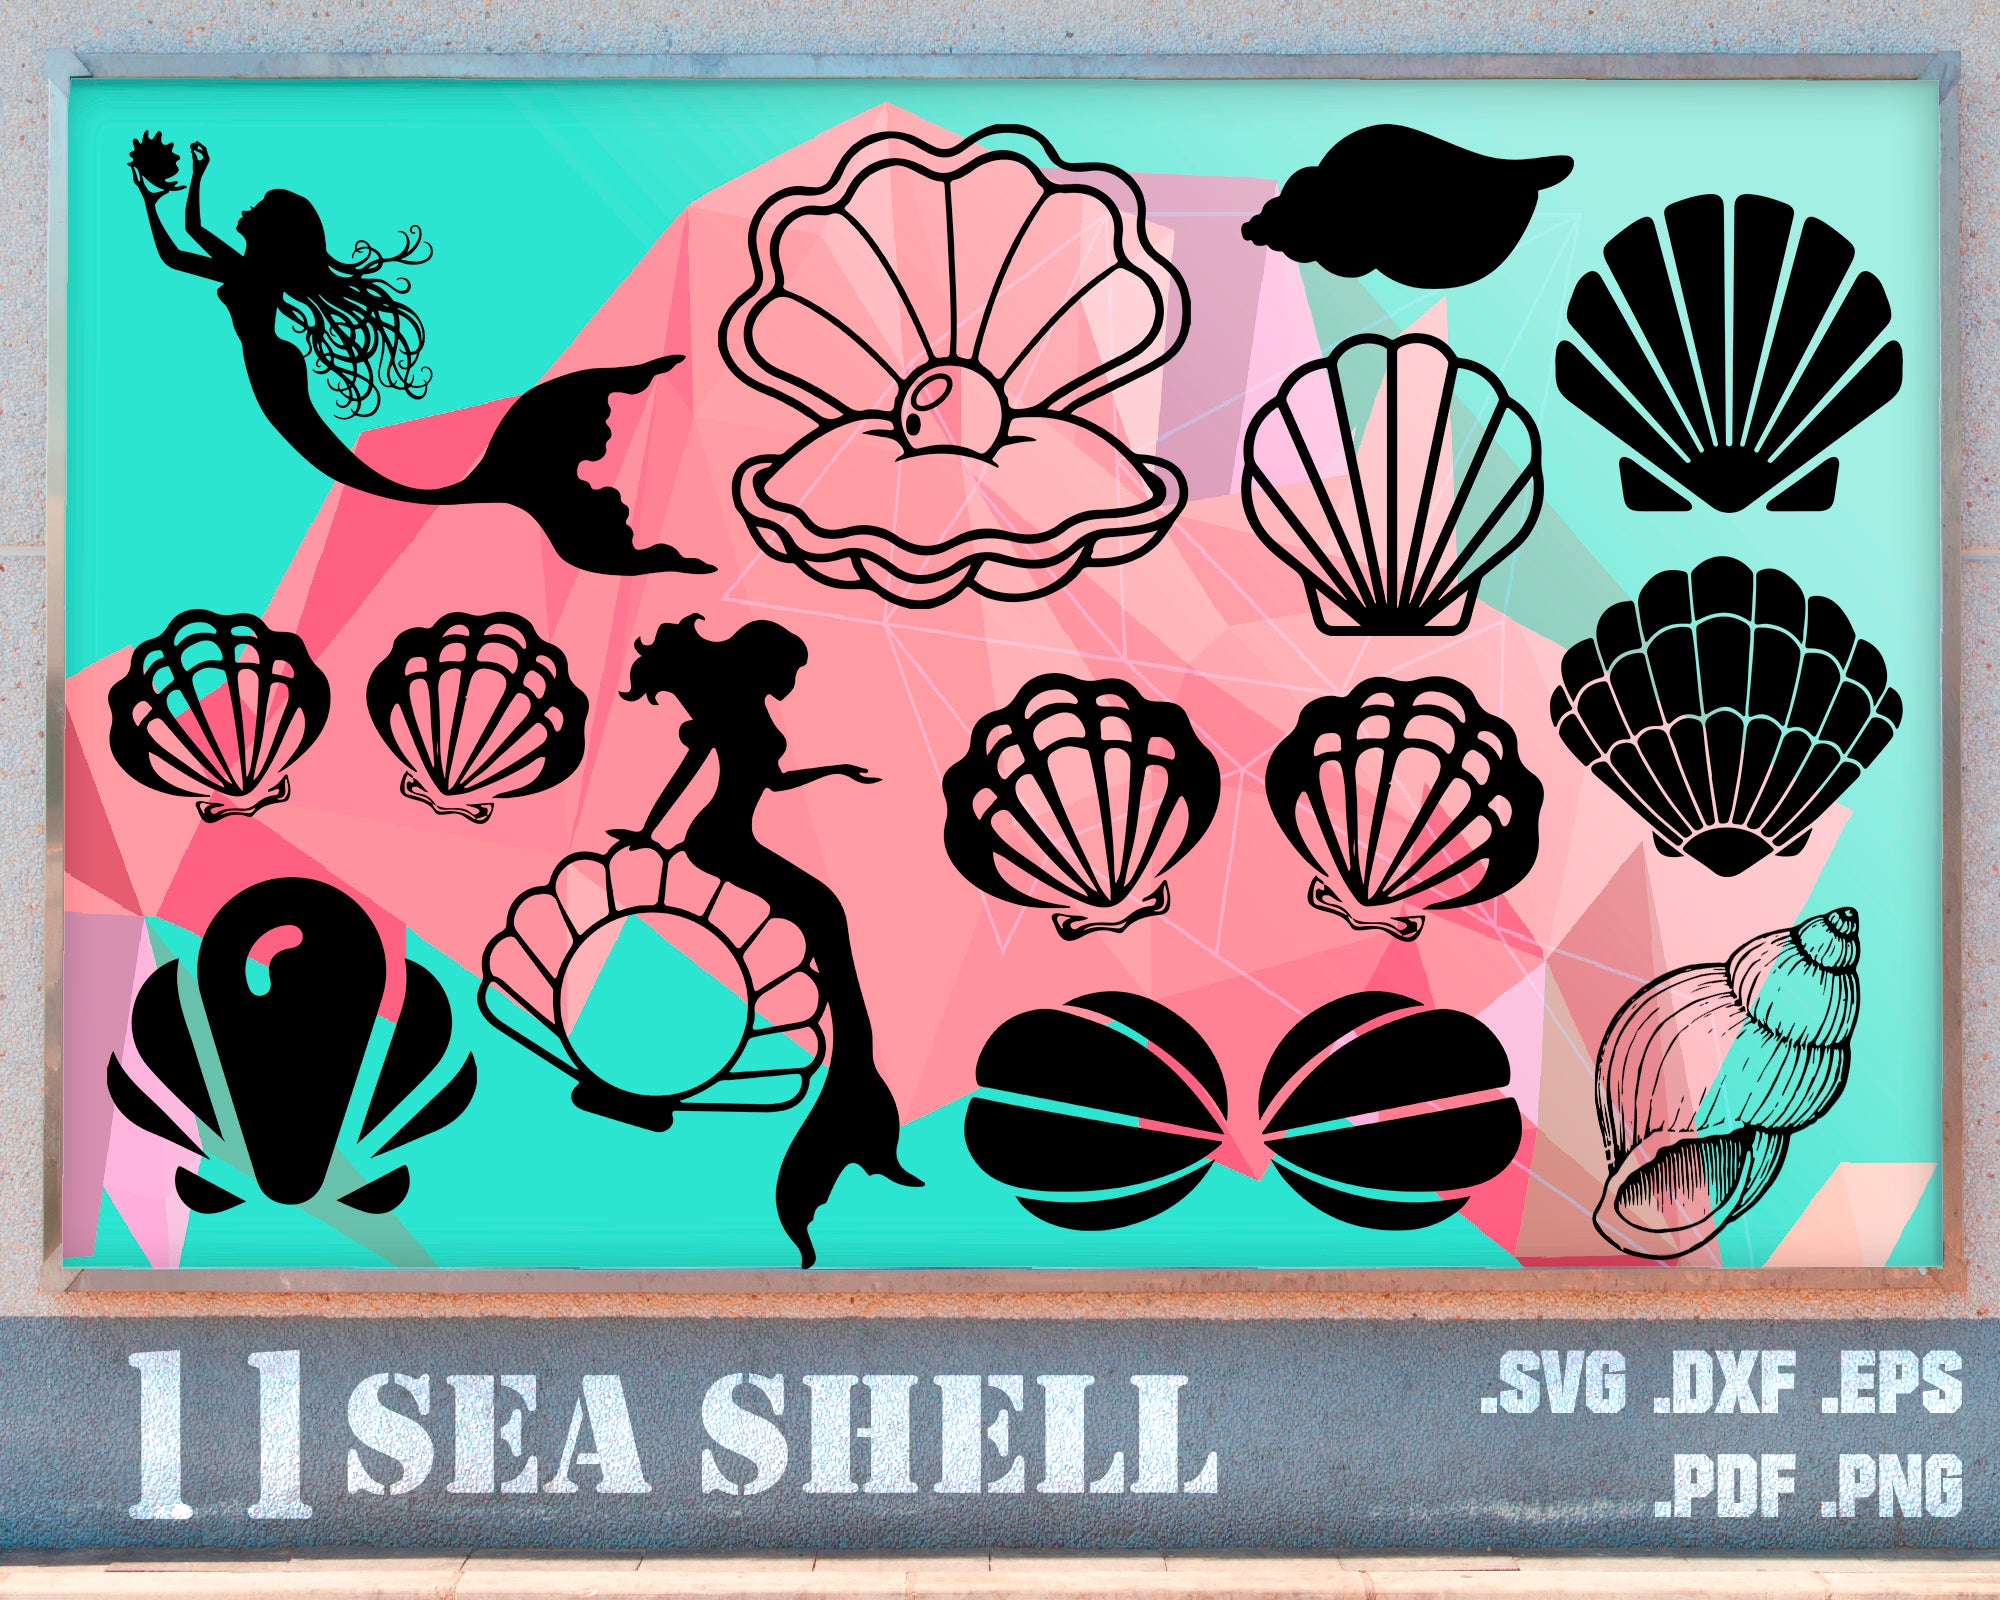 Seashells svg Mermaid SVG SVG Seas the day svg dxf PNG /& Ai cuttable clipart for craft cutters eps mermaid wreath svg sea horse svg